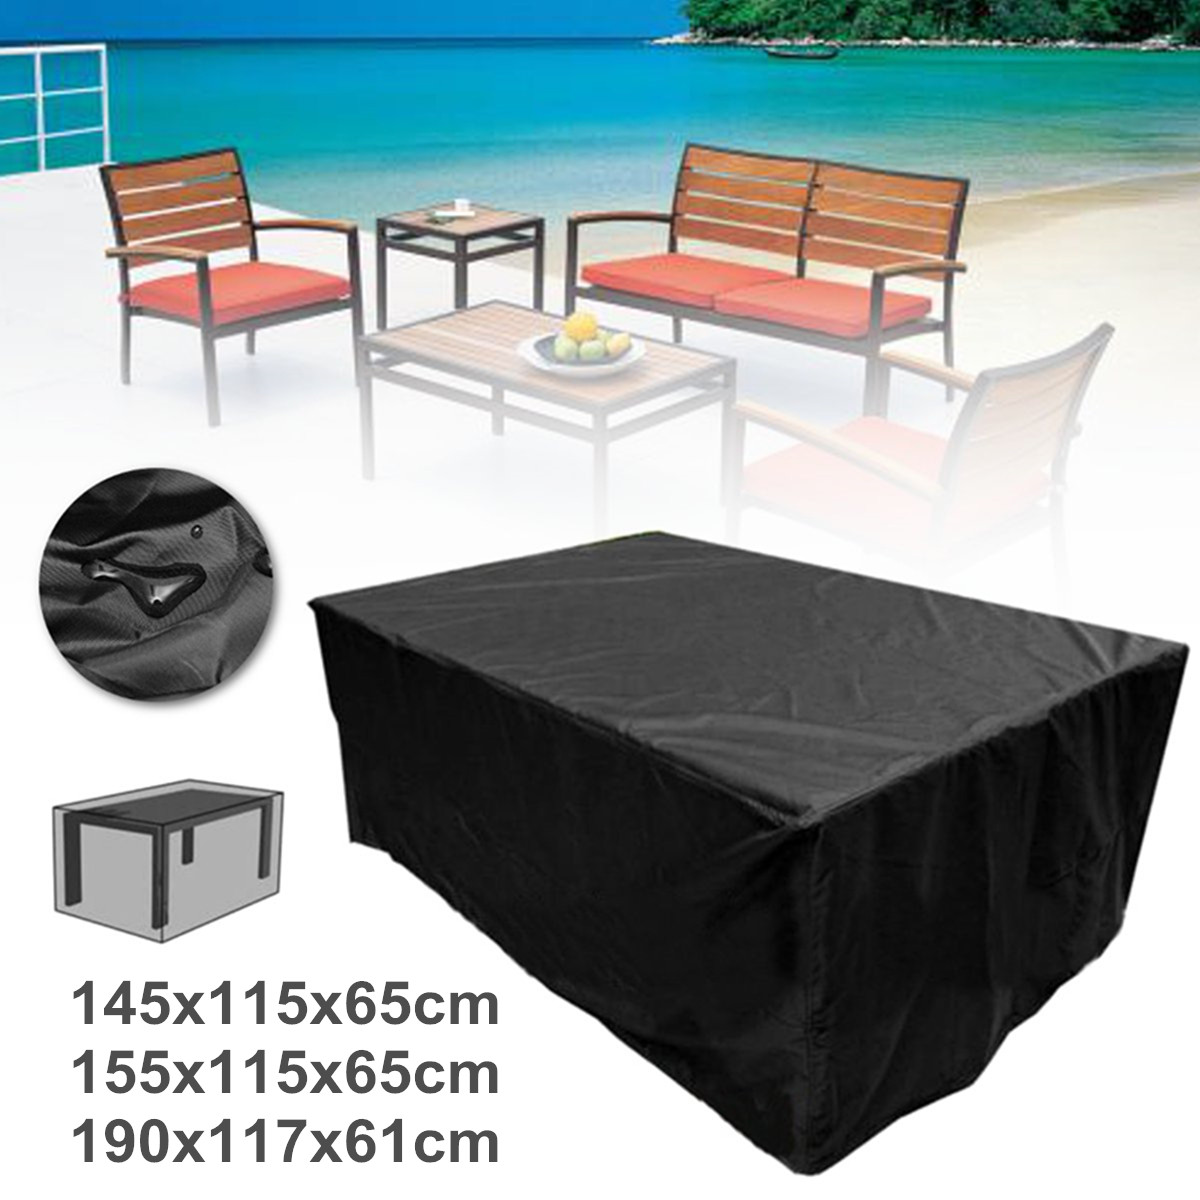 corner sofa outdoor furniture covers italy agreement waterproof garden patio cover rectangular rattan details about table